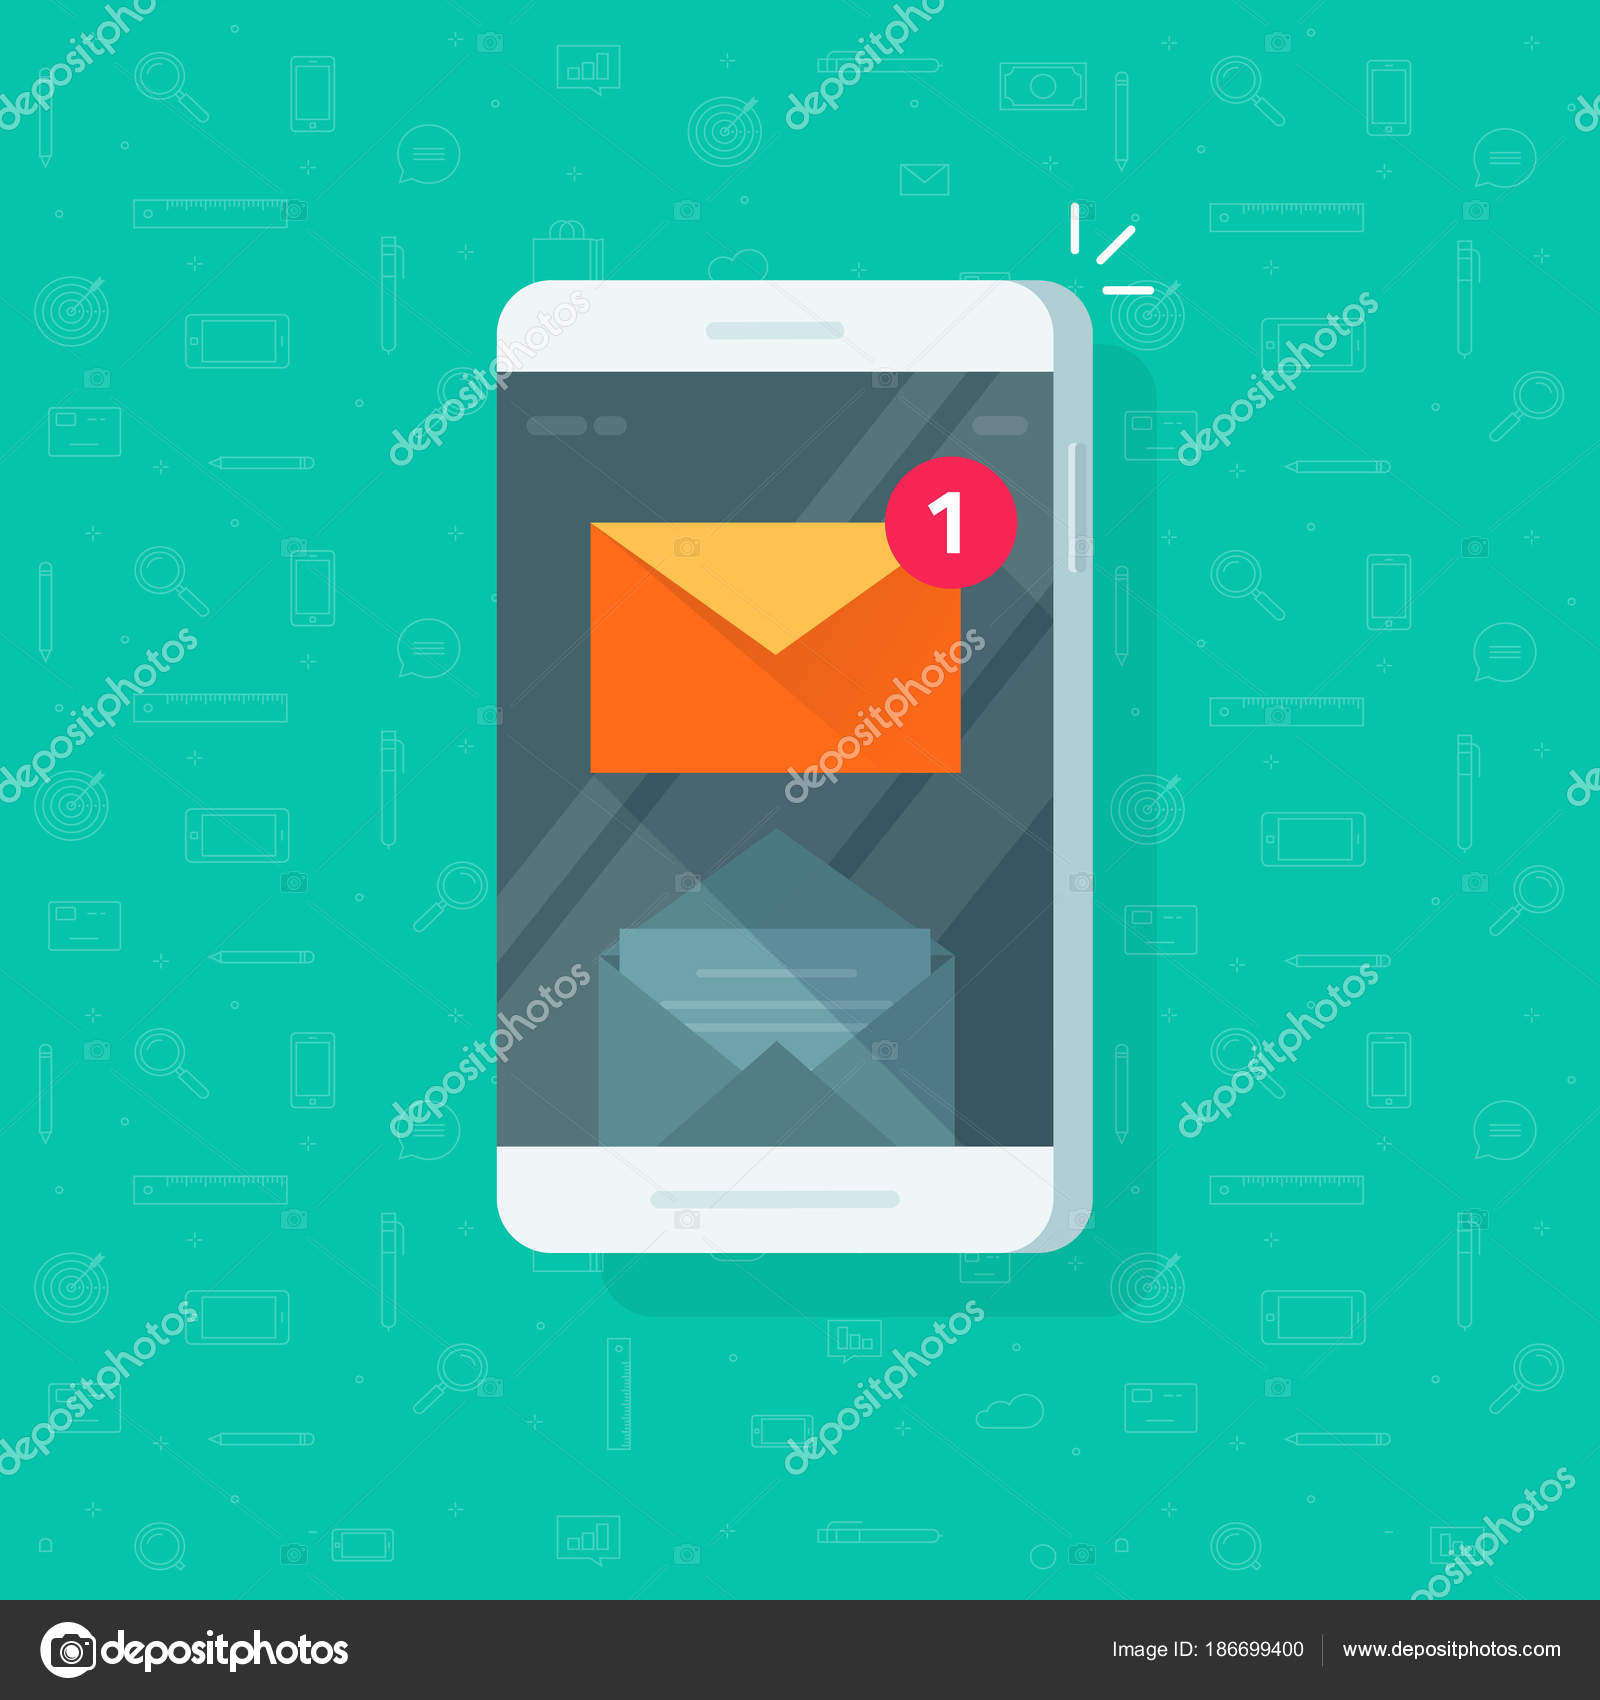 New email notification on mobile phone vector illustration, flat